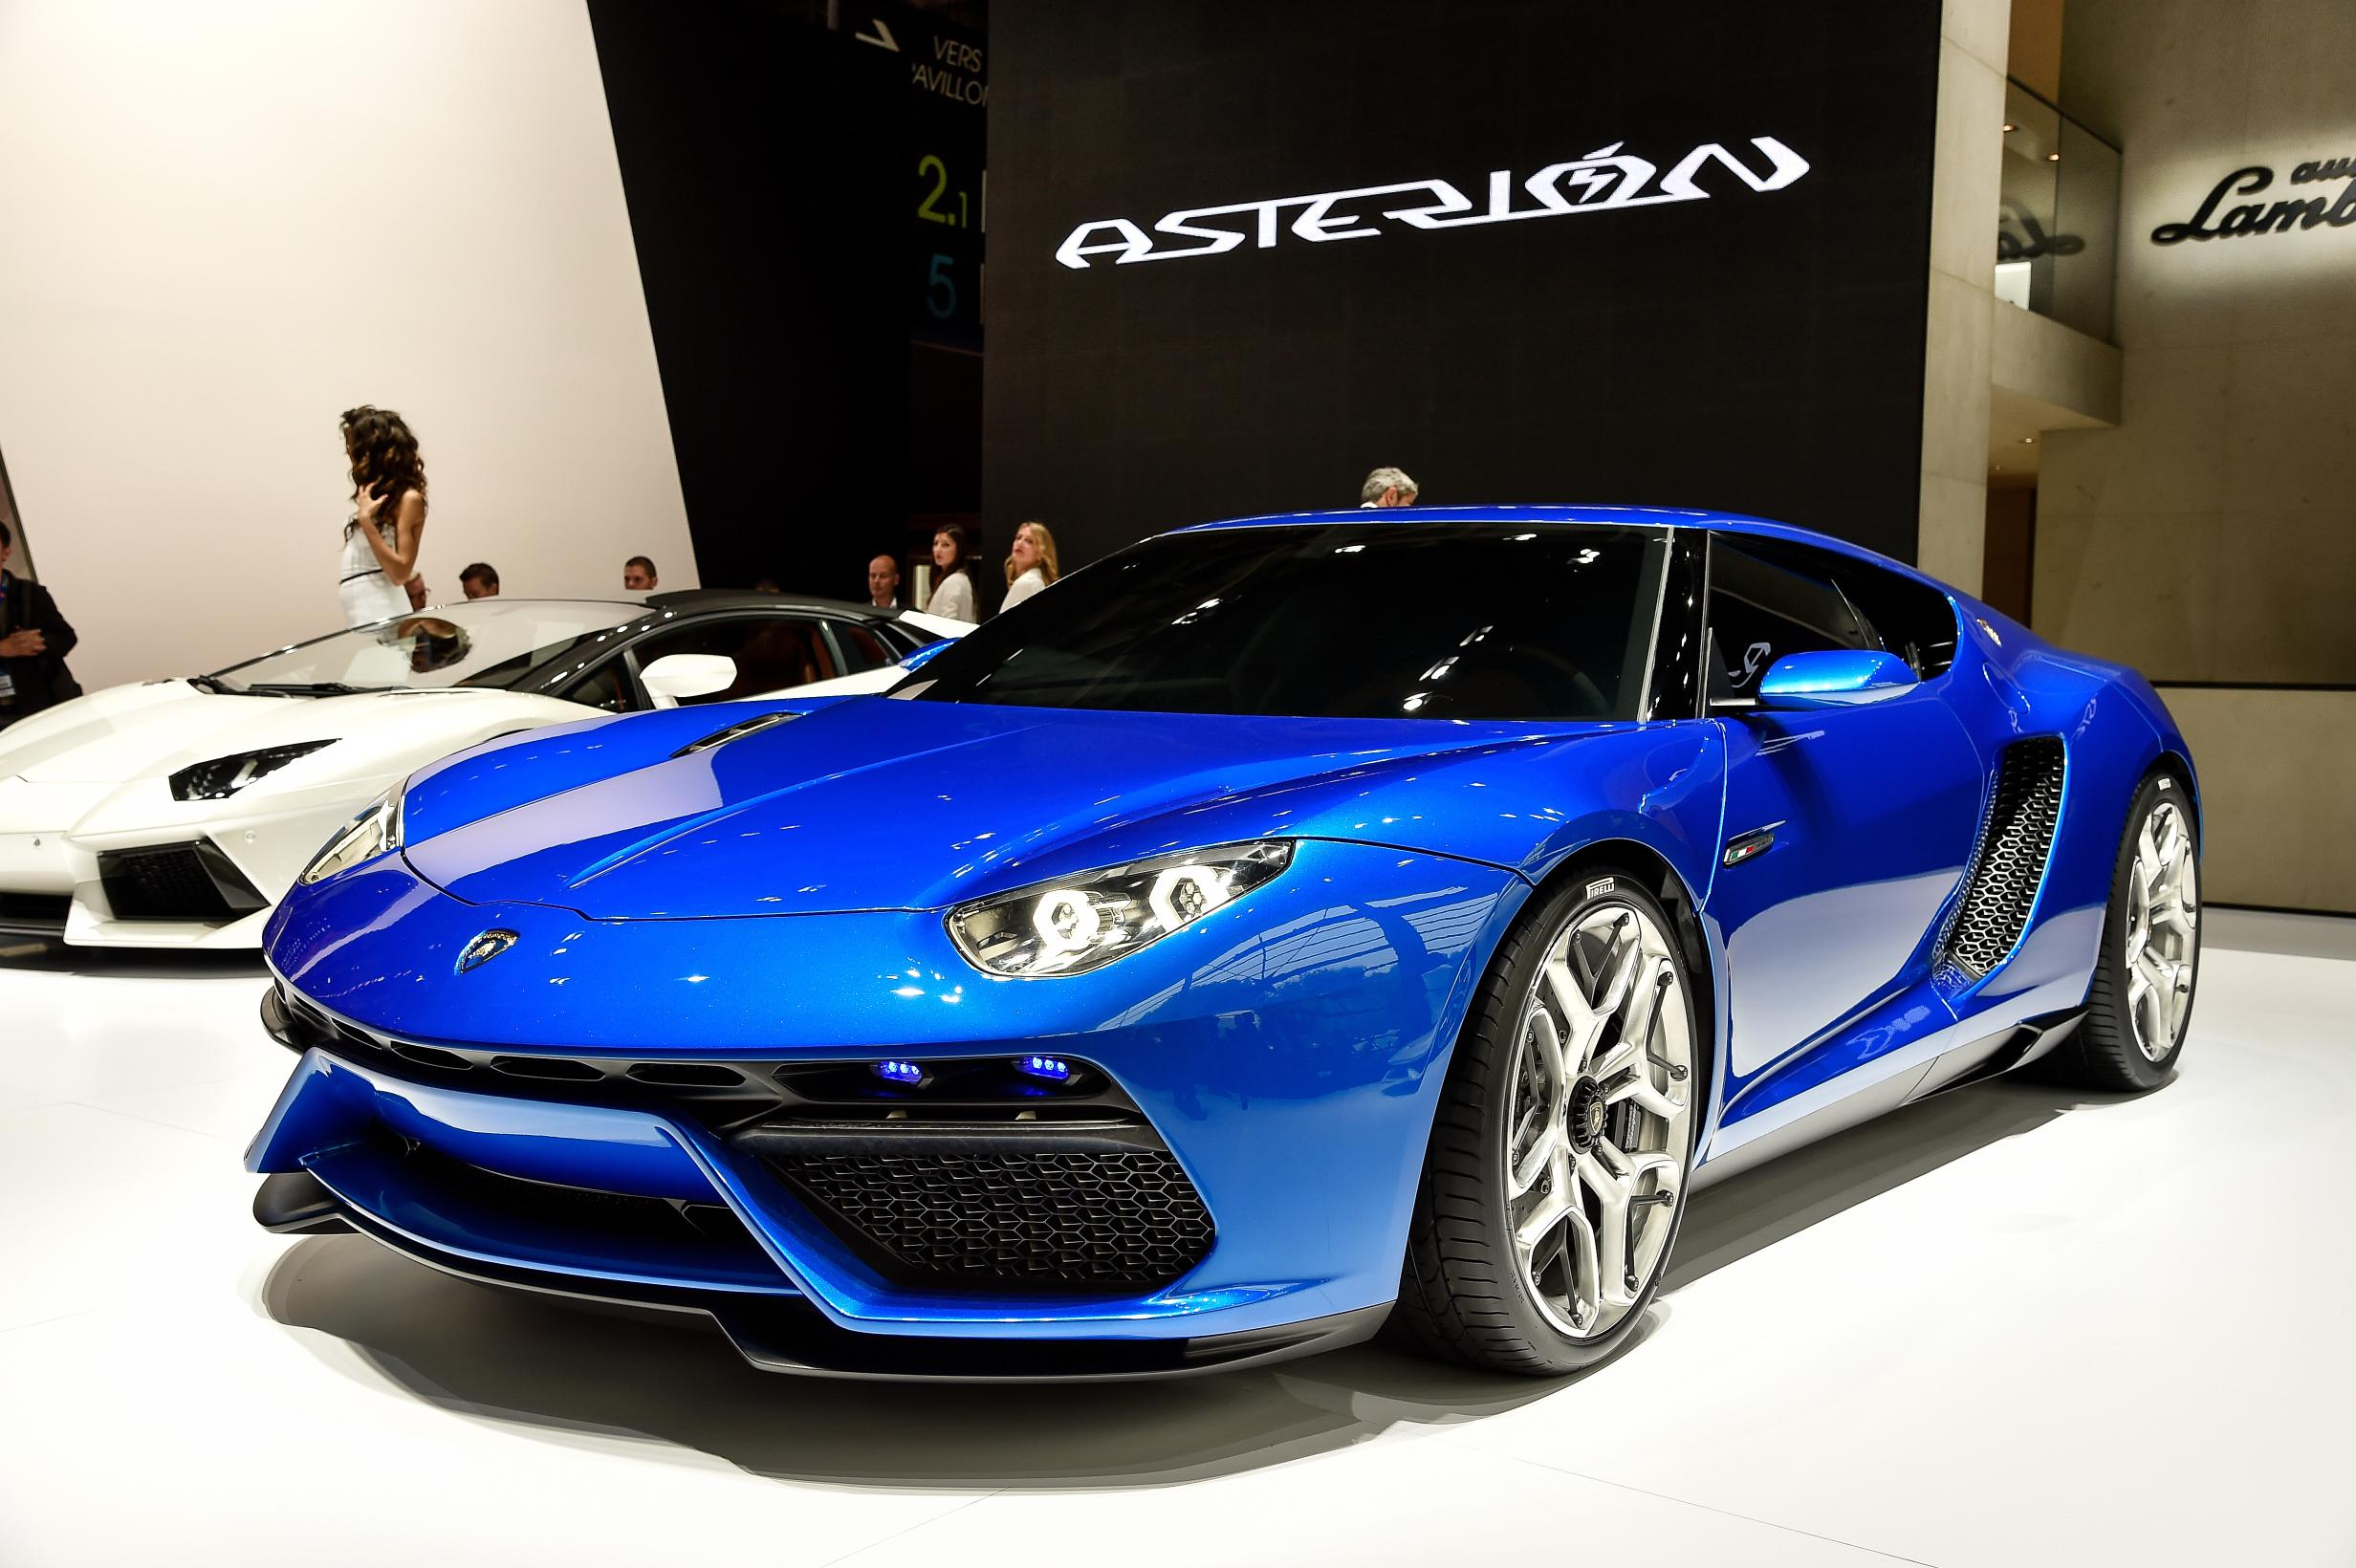 Lamborghini Asterion Lpi 910 4 Hd Wallpapers